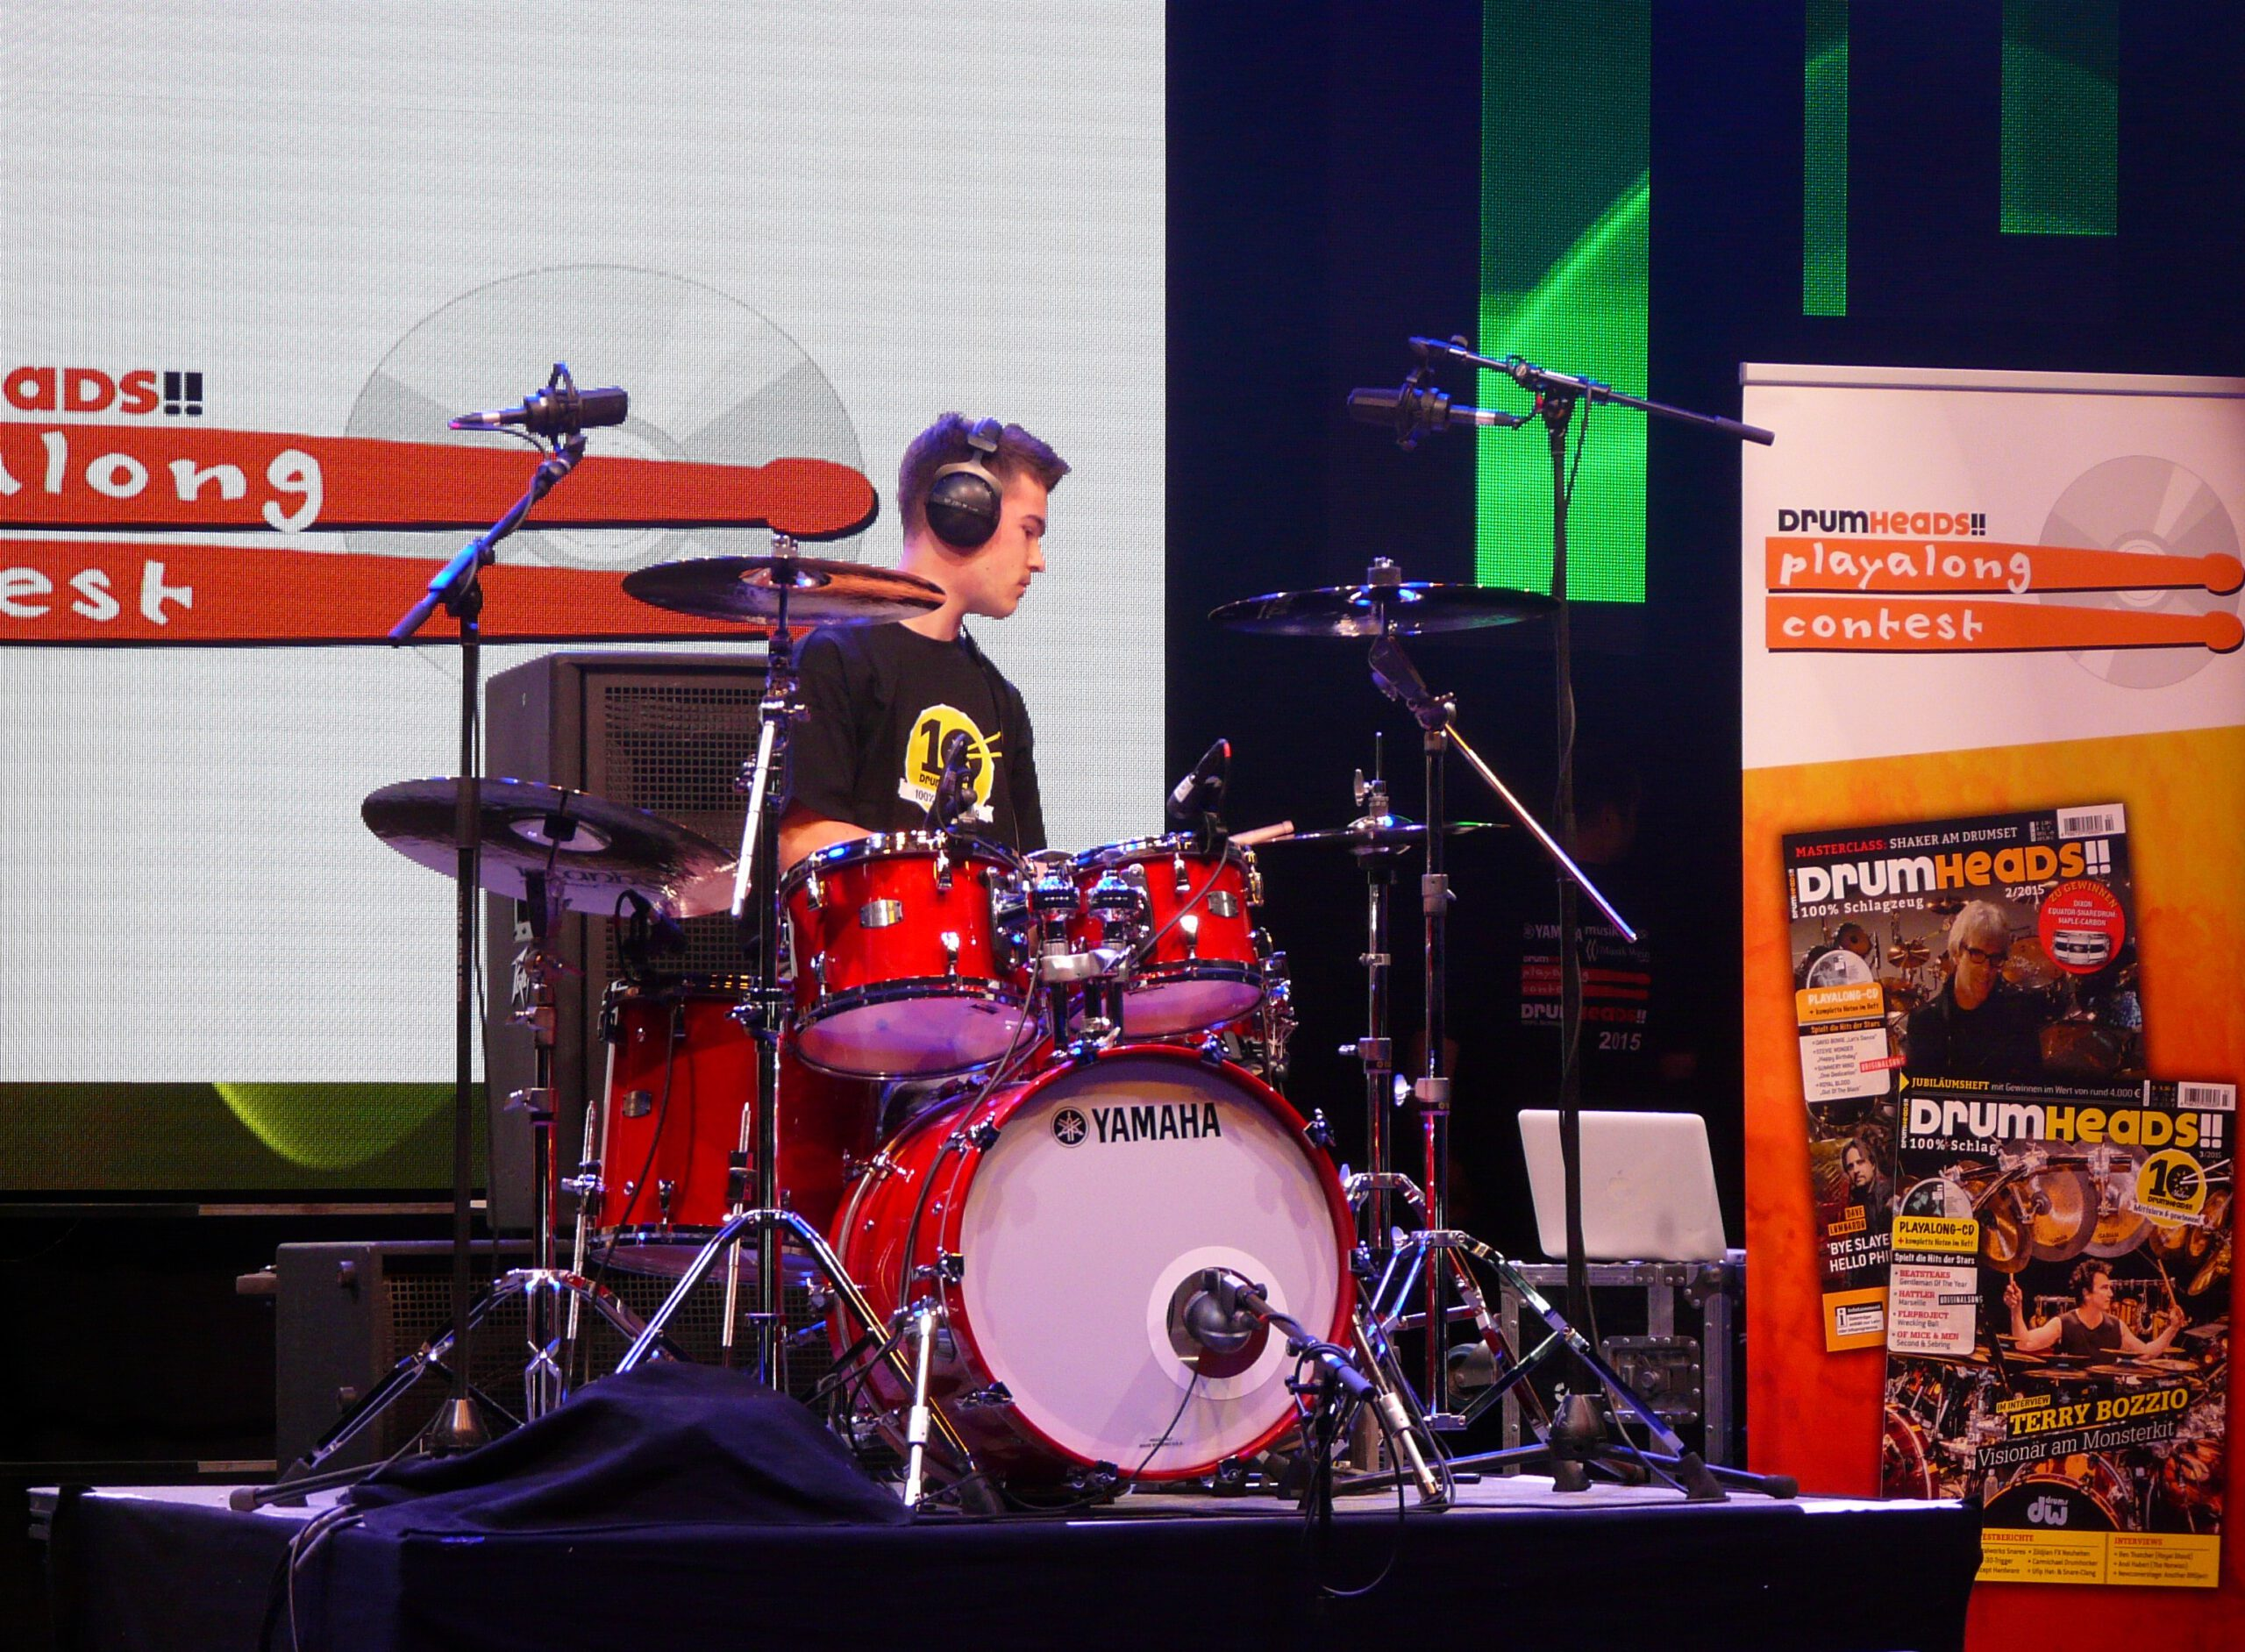 Drum Heads Play Along Contest